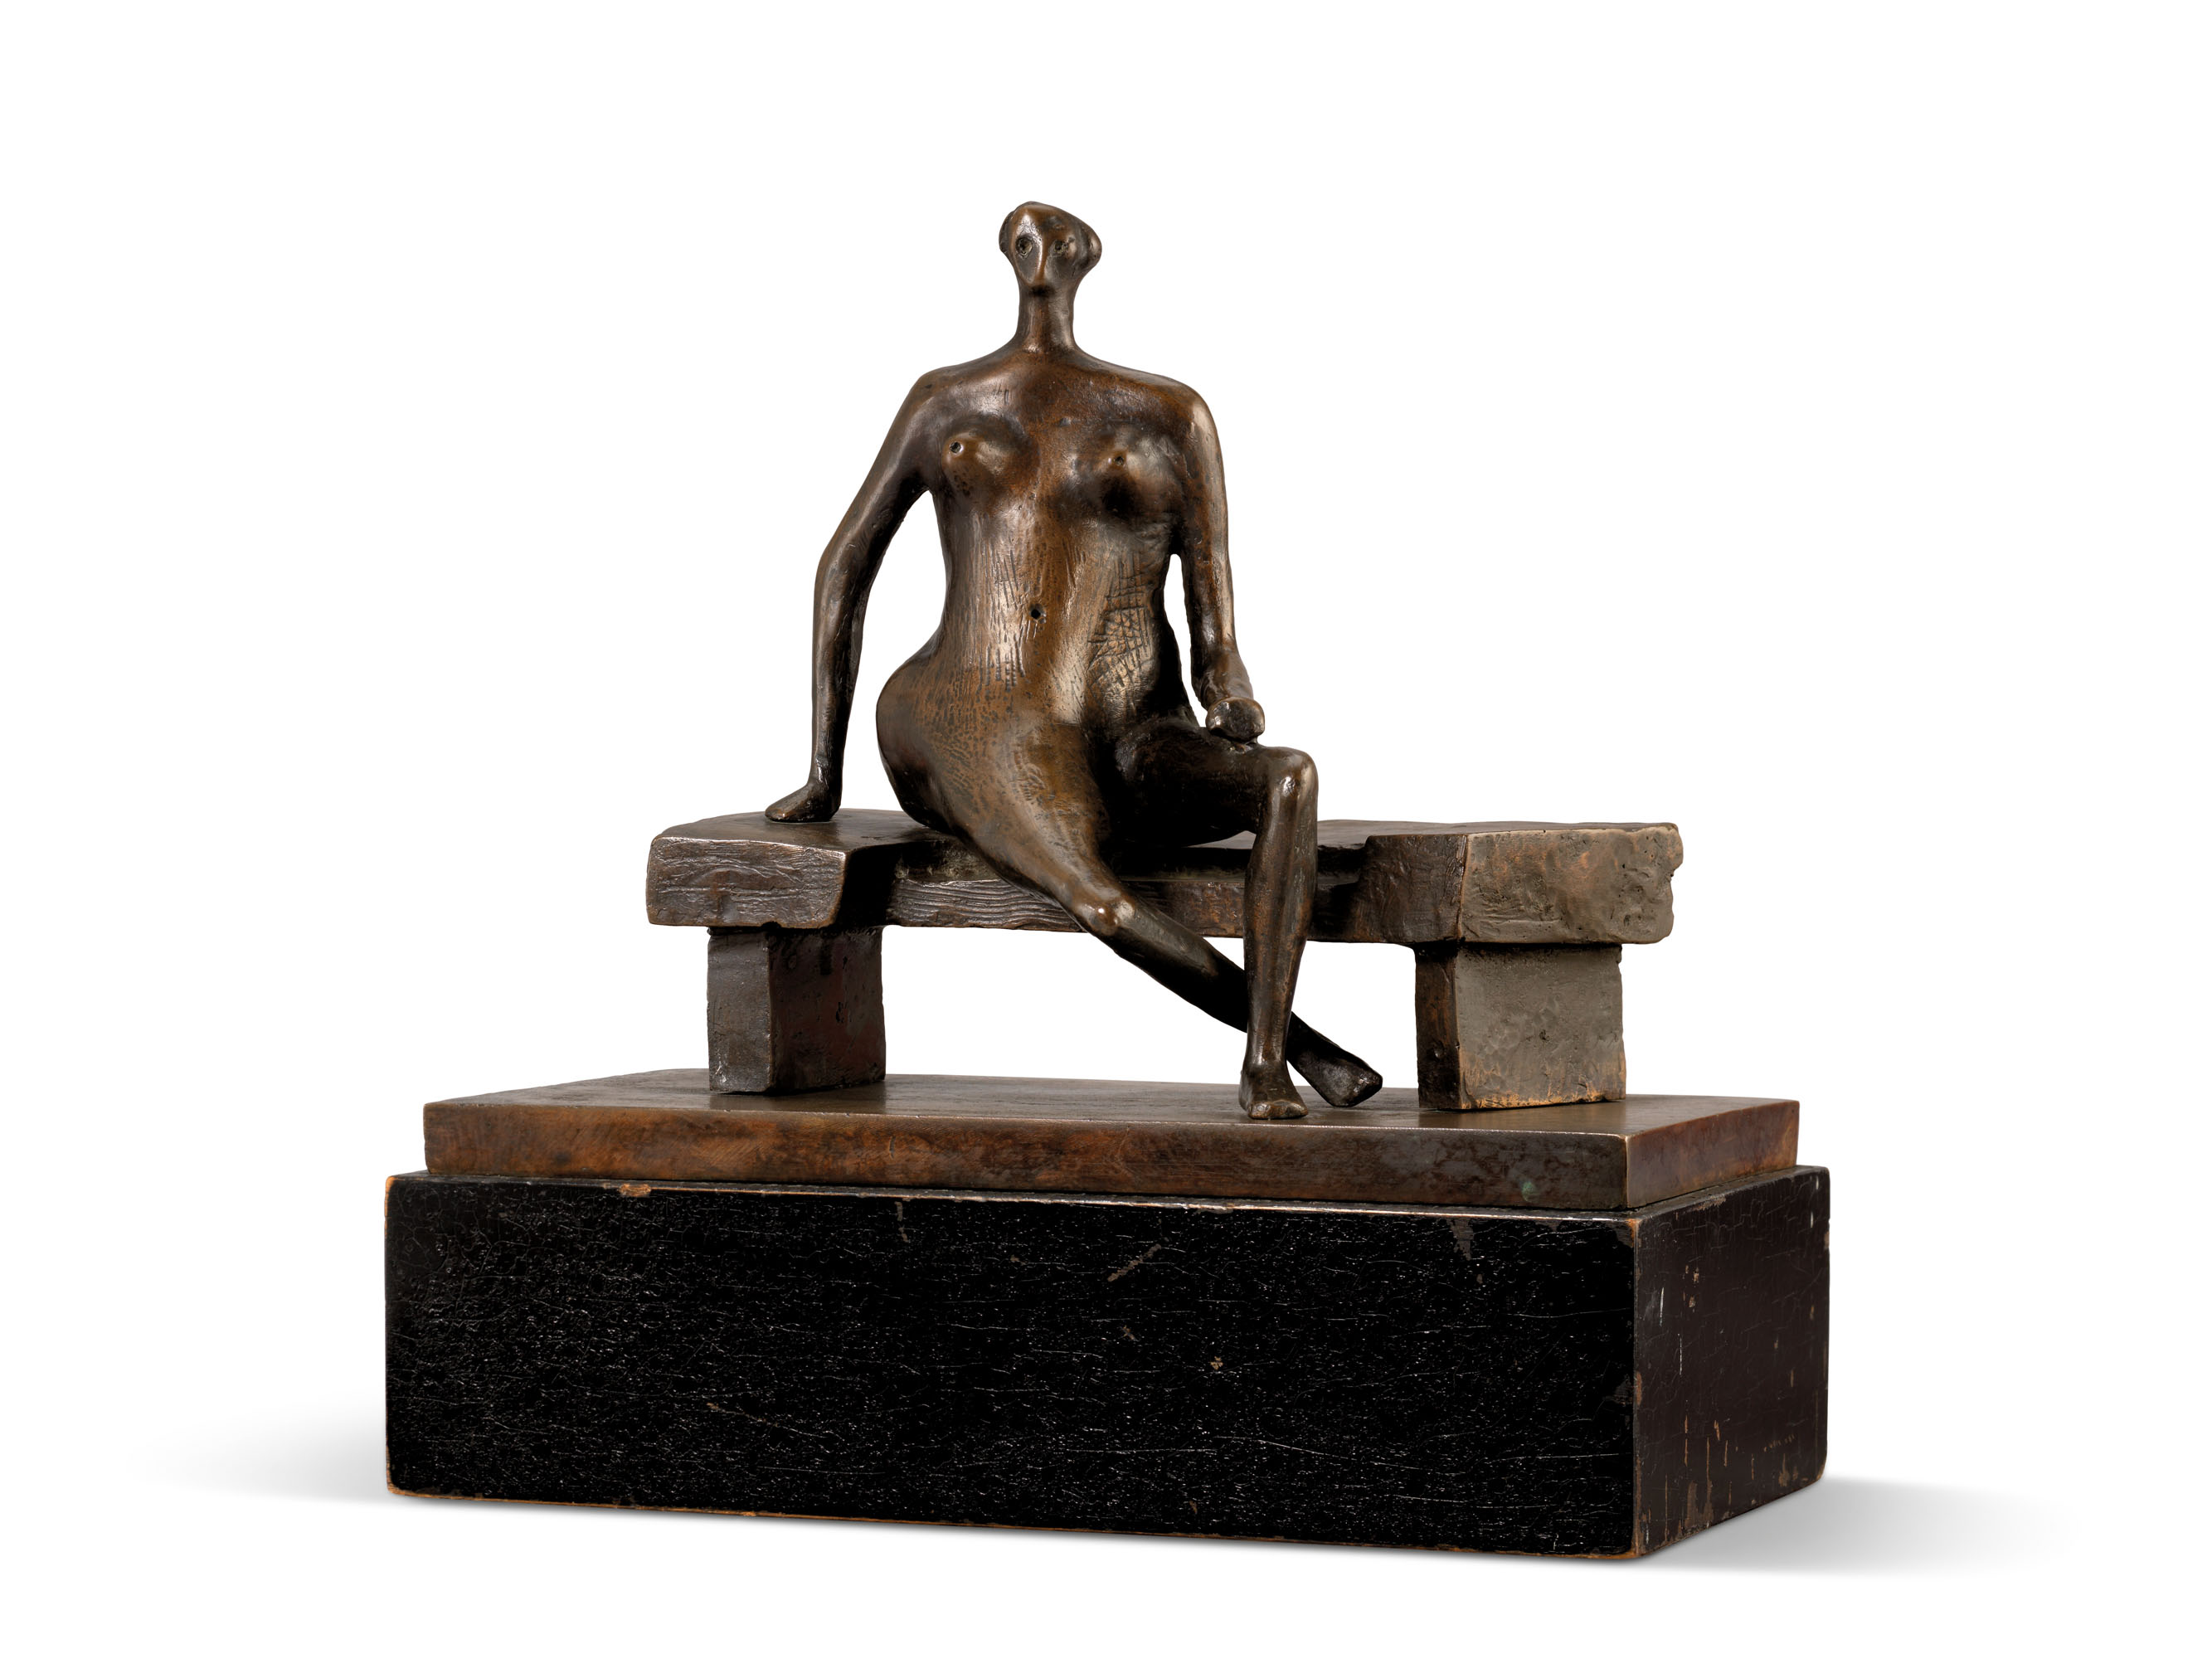 Henry Moore (1898-1986),Seated Woman with Crossed Feet, conceived in 1957 and cast in 1965. Bronze with a dark brown patina, on a black-painted wooden base. 9½ in. (24.1 cm) wide, excluding base. Estimate £150,000-250,000. Offered inModern British Art Day Saleon 2 March at Christie's inLondon